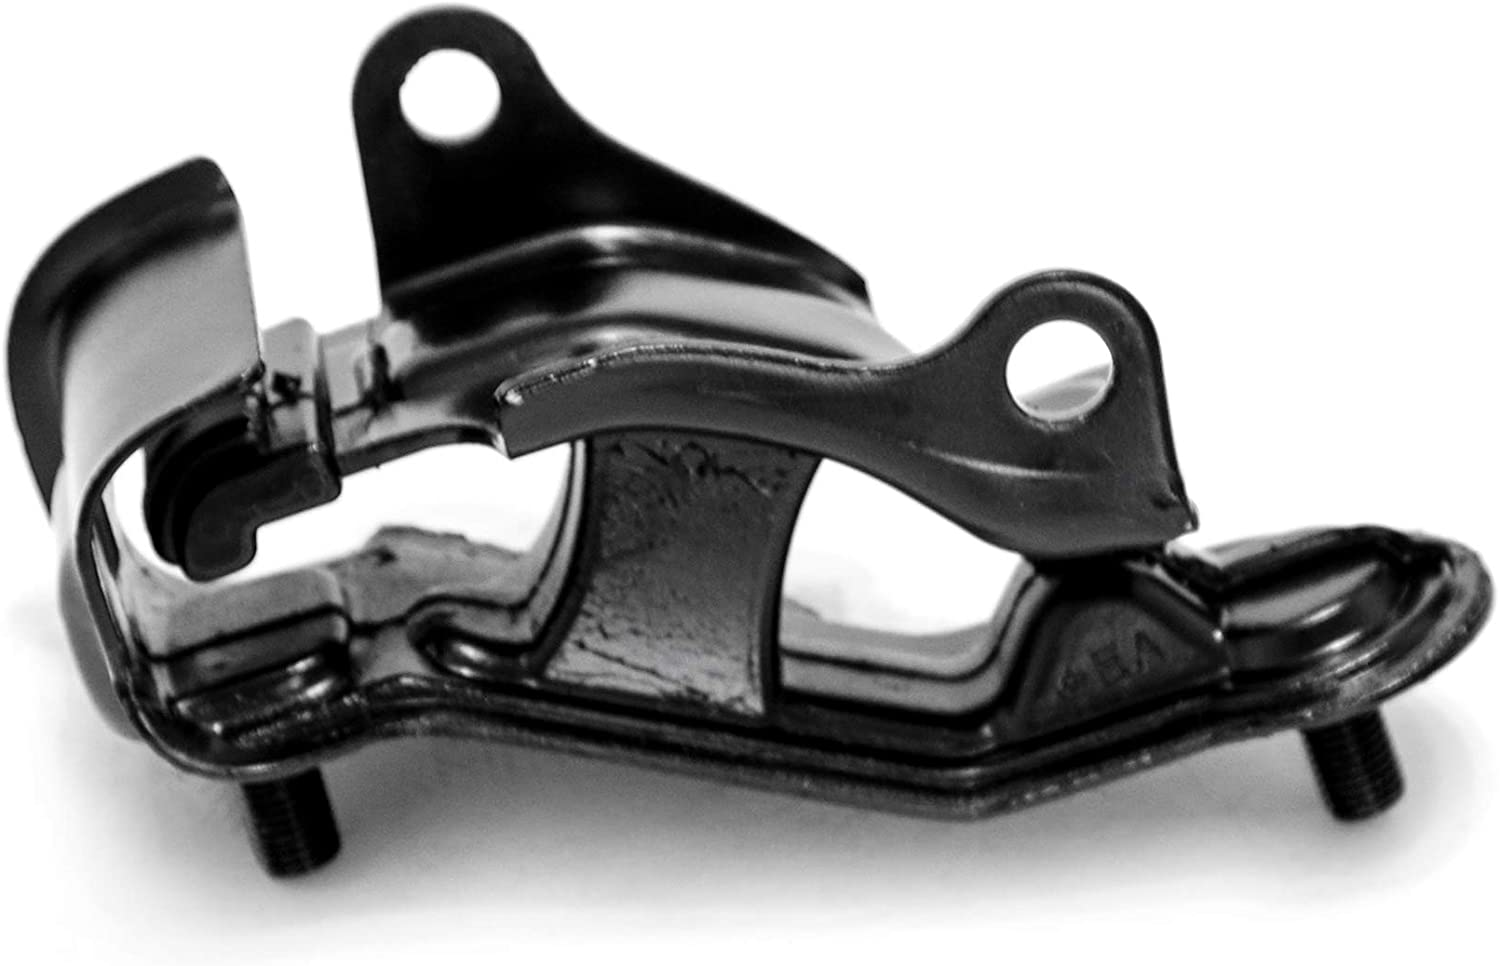 RP Remarkable Power Front Auto Transmission Mount Compatible With HONDA ACCORD 3.0L 2003-2007